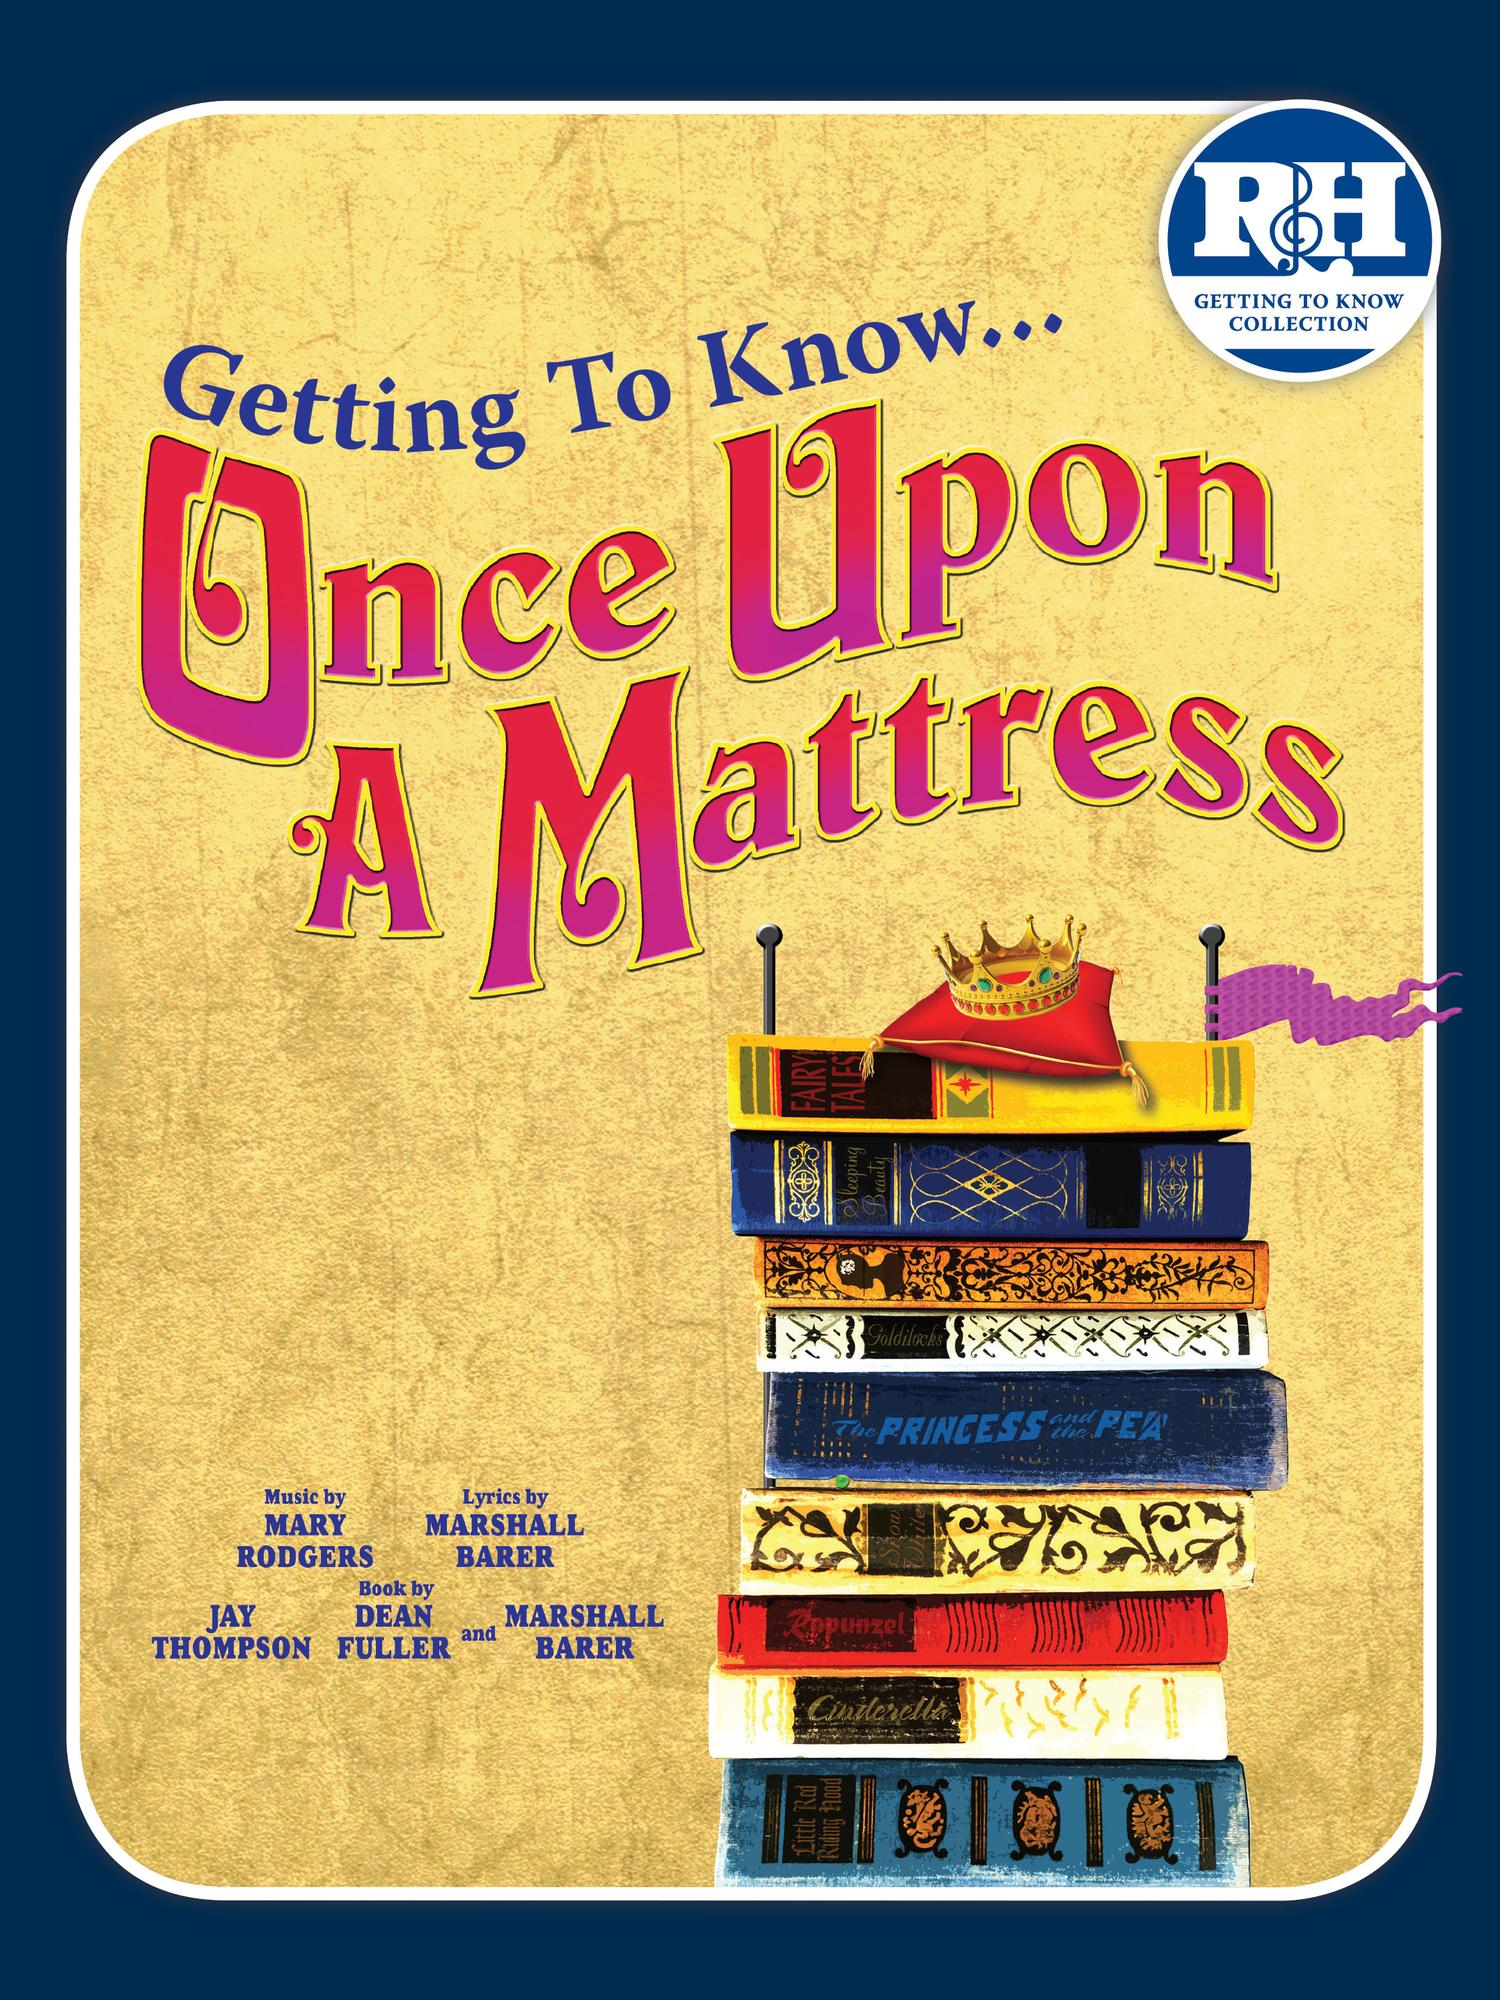 Once Upon A Mattress - Getting To Know You Collection